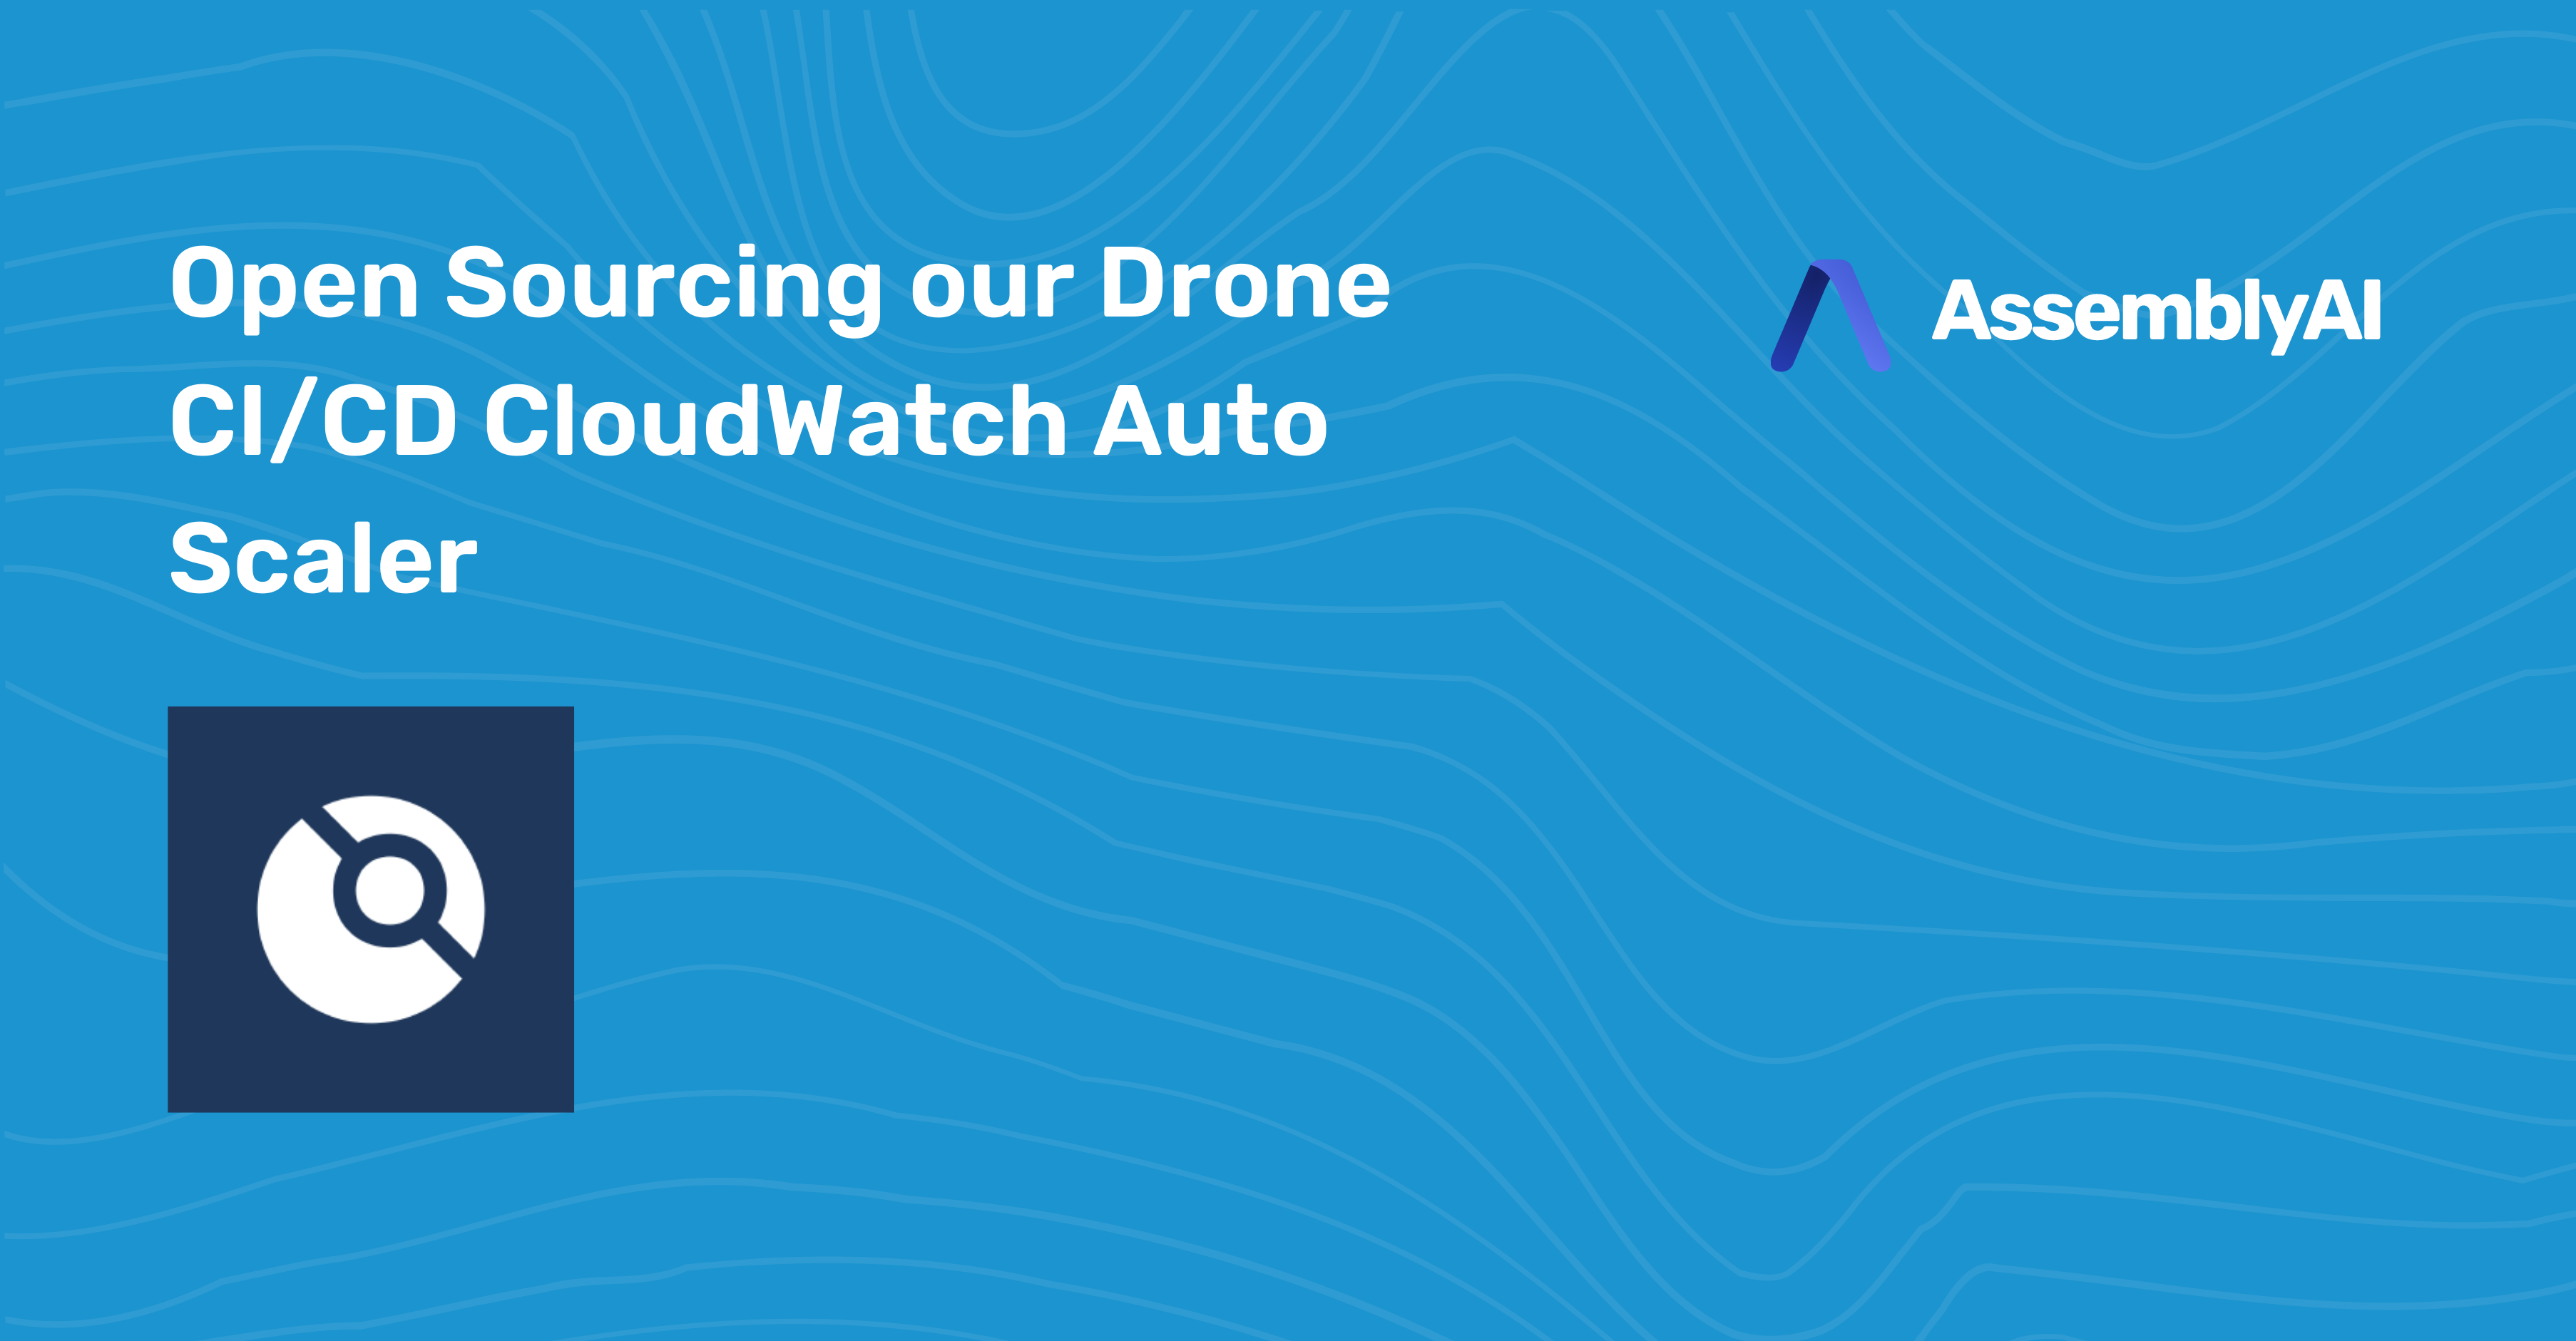 Open Sourcing our Drone CI/CD CloudWatch Auto Scaler